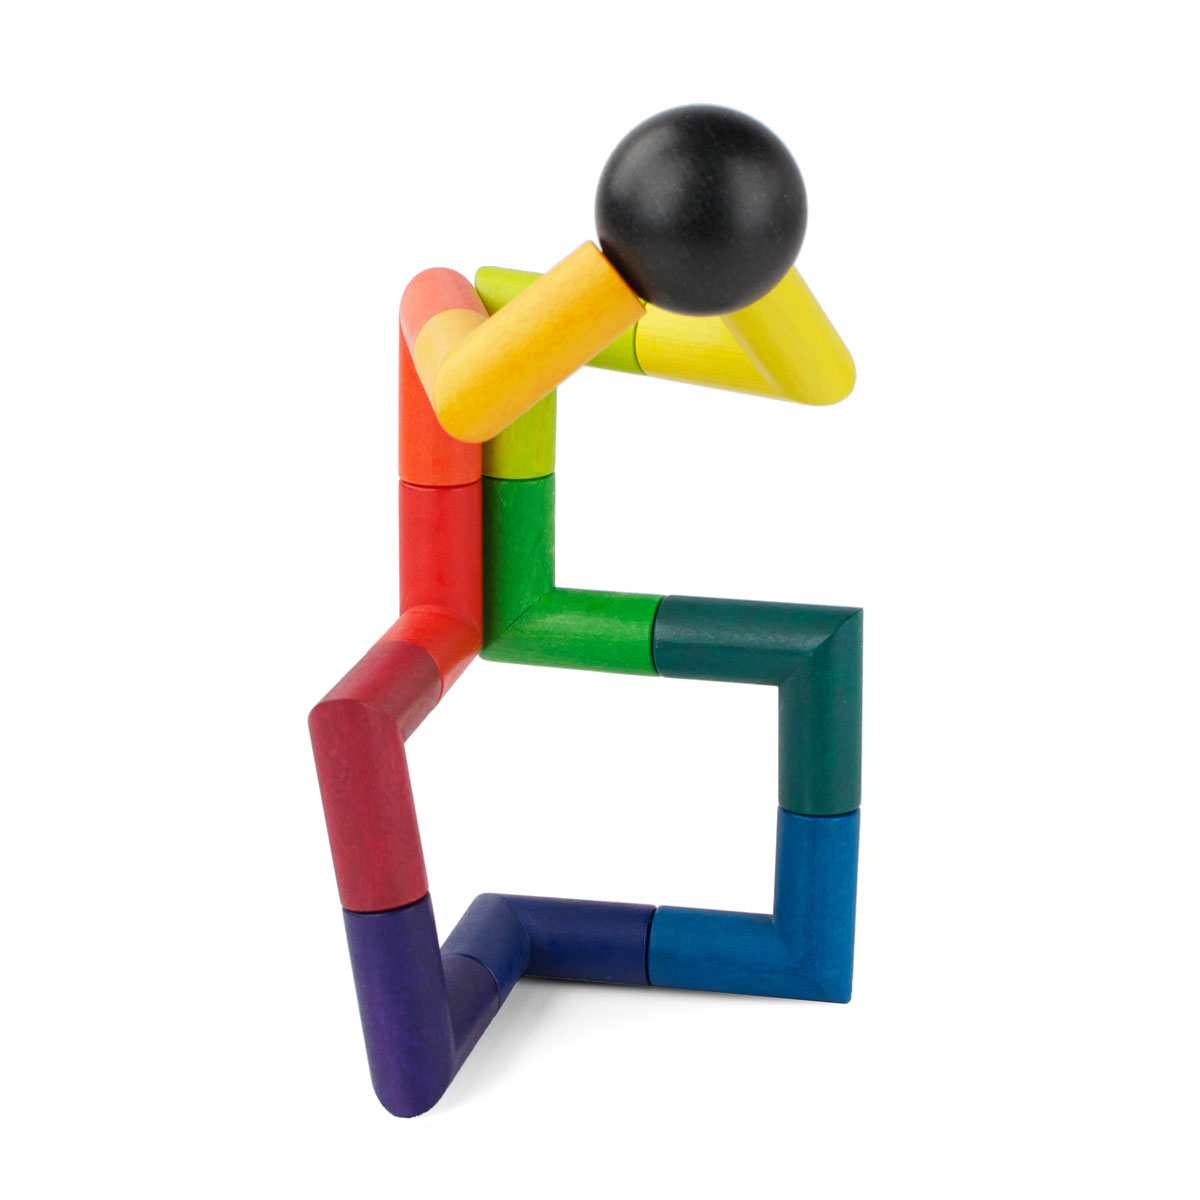 PlayableArt Angle Toy in Rainbow